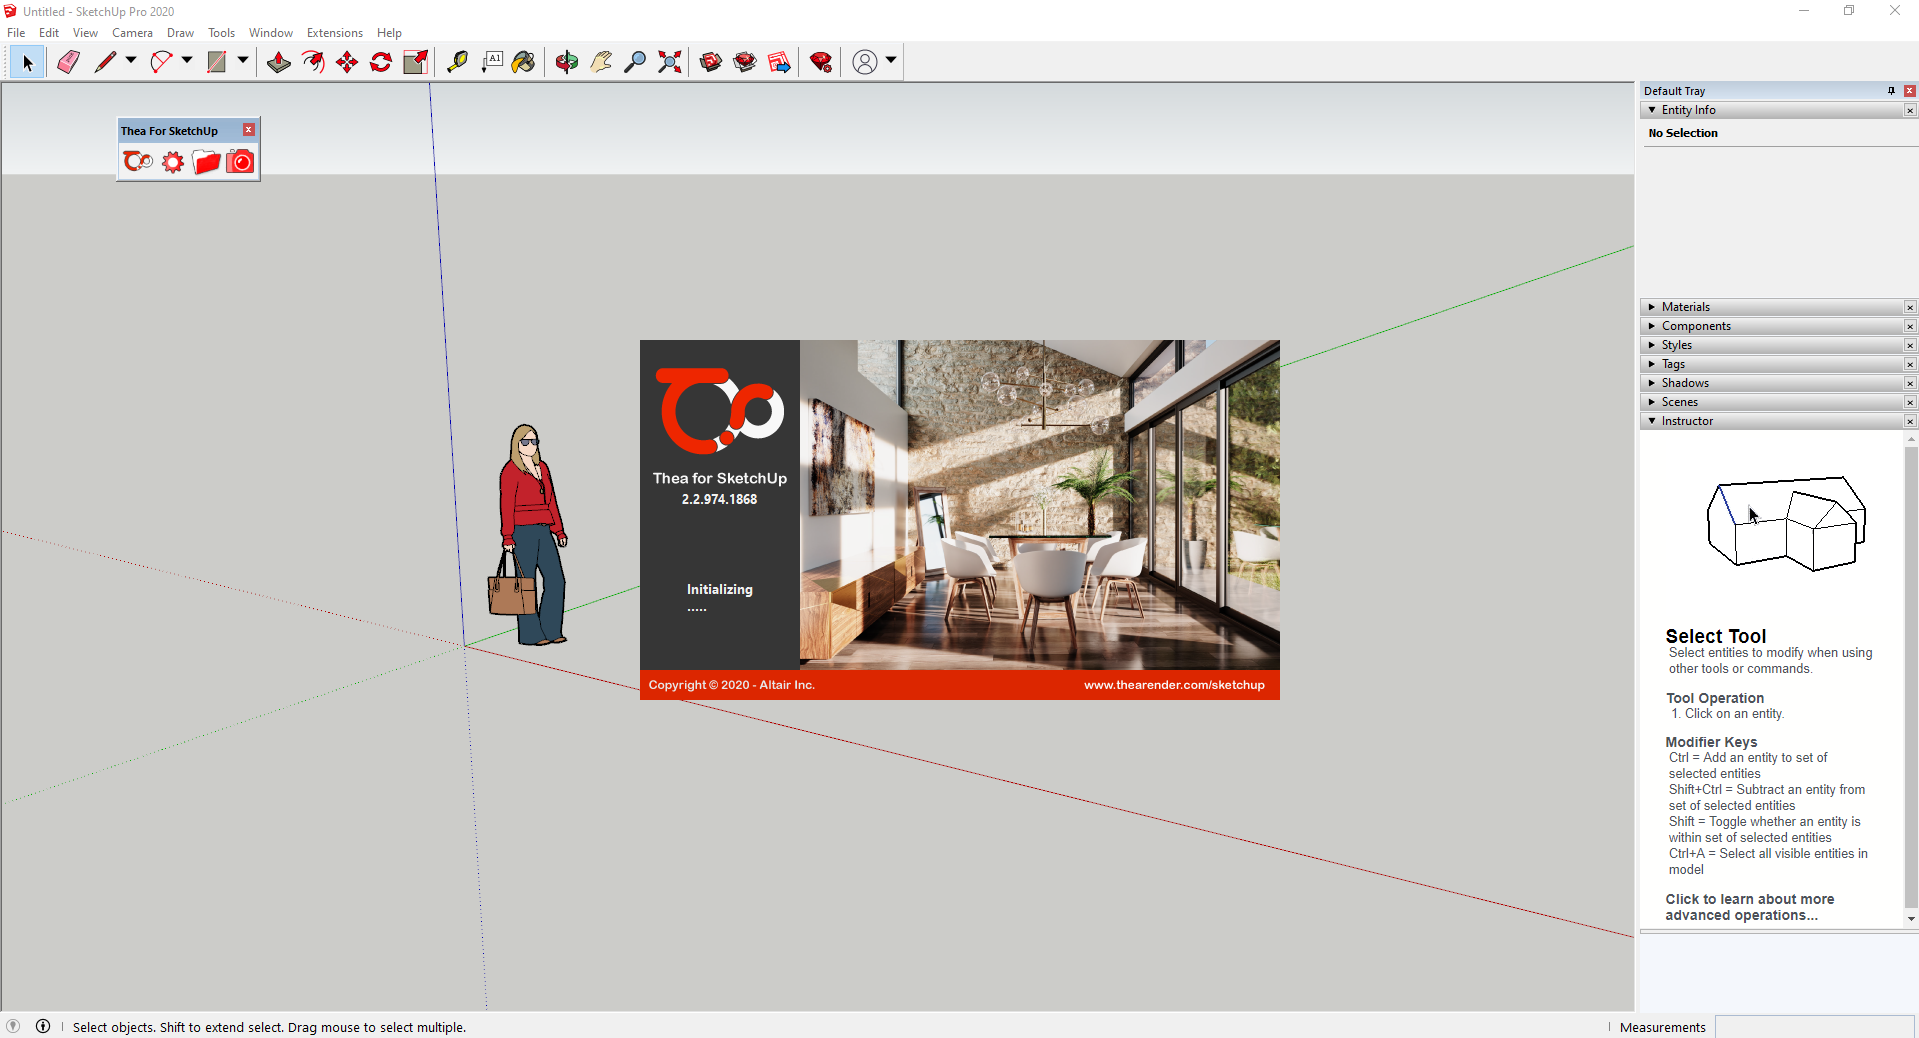 Working with Thea For SketchUp 2.2.974.1868 full license